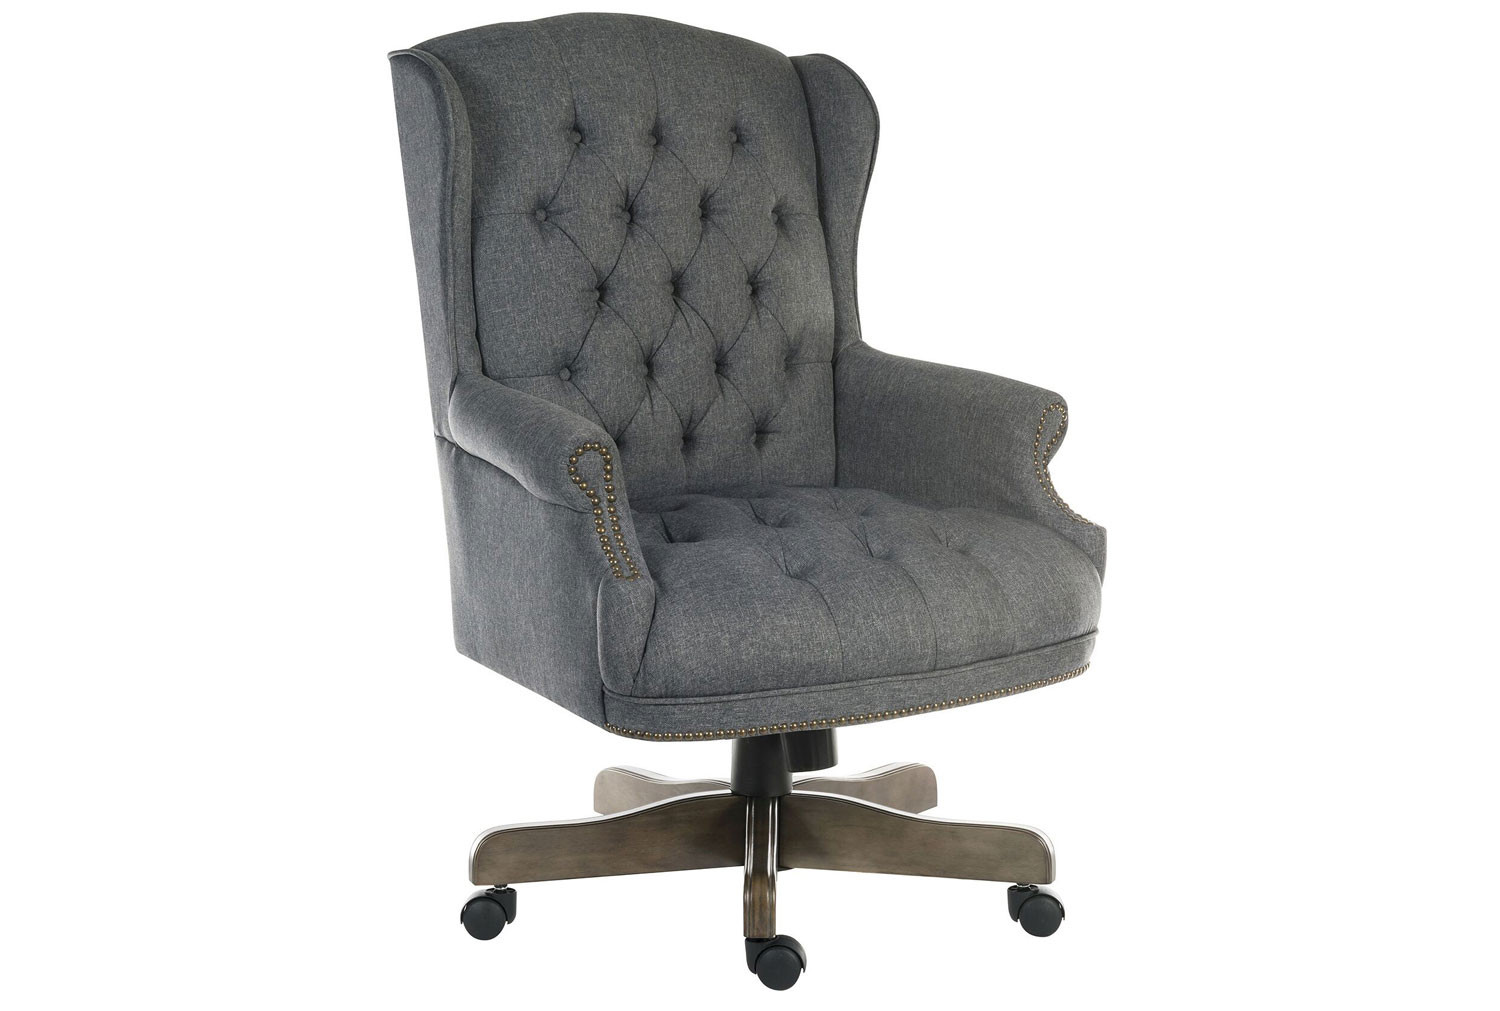 Picture of: Chairman Swivel Chair Grey Fabric Furniture At Work